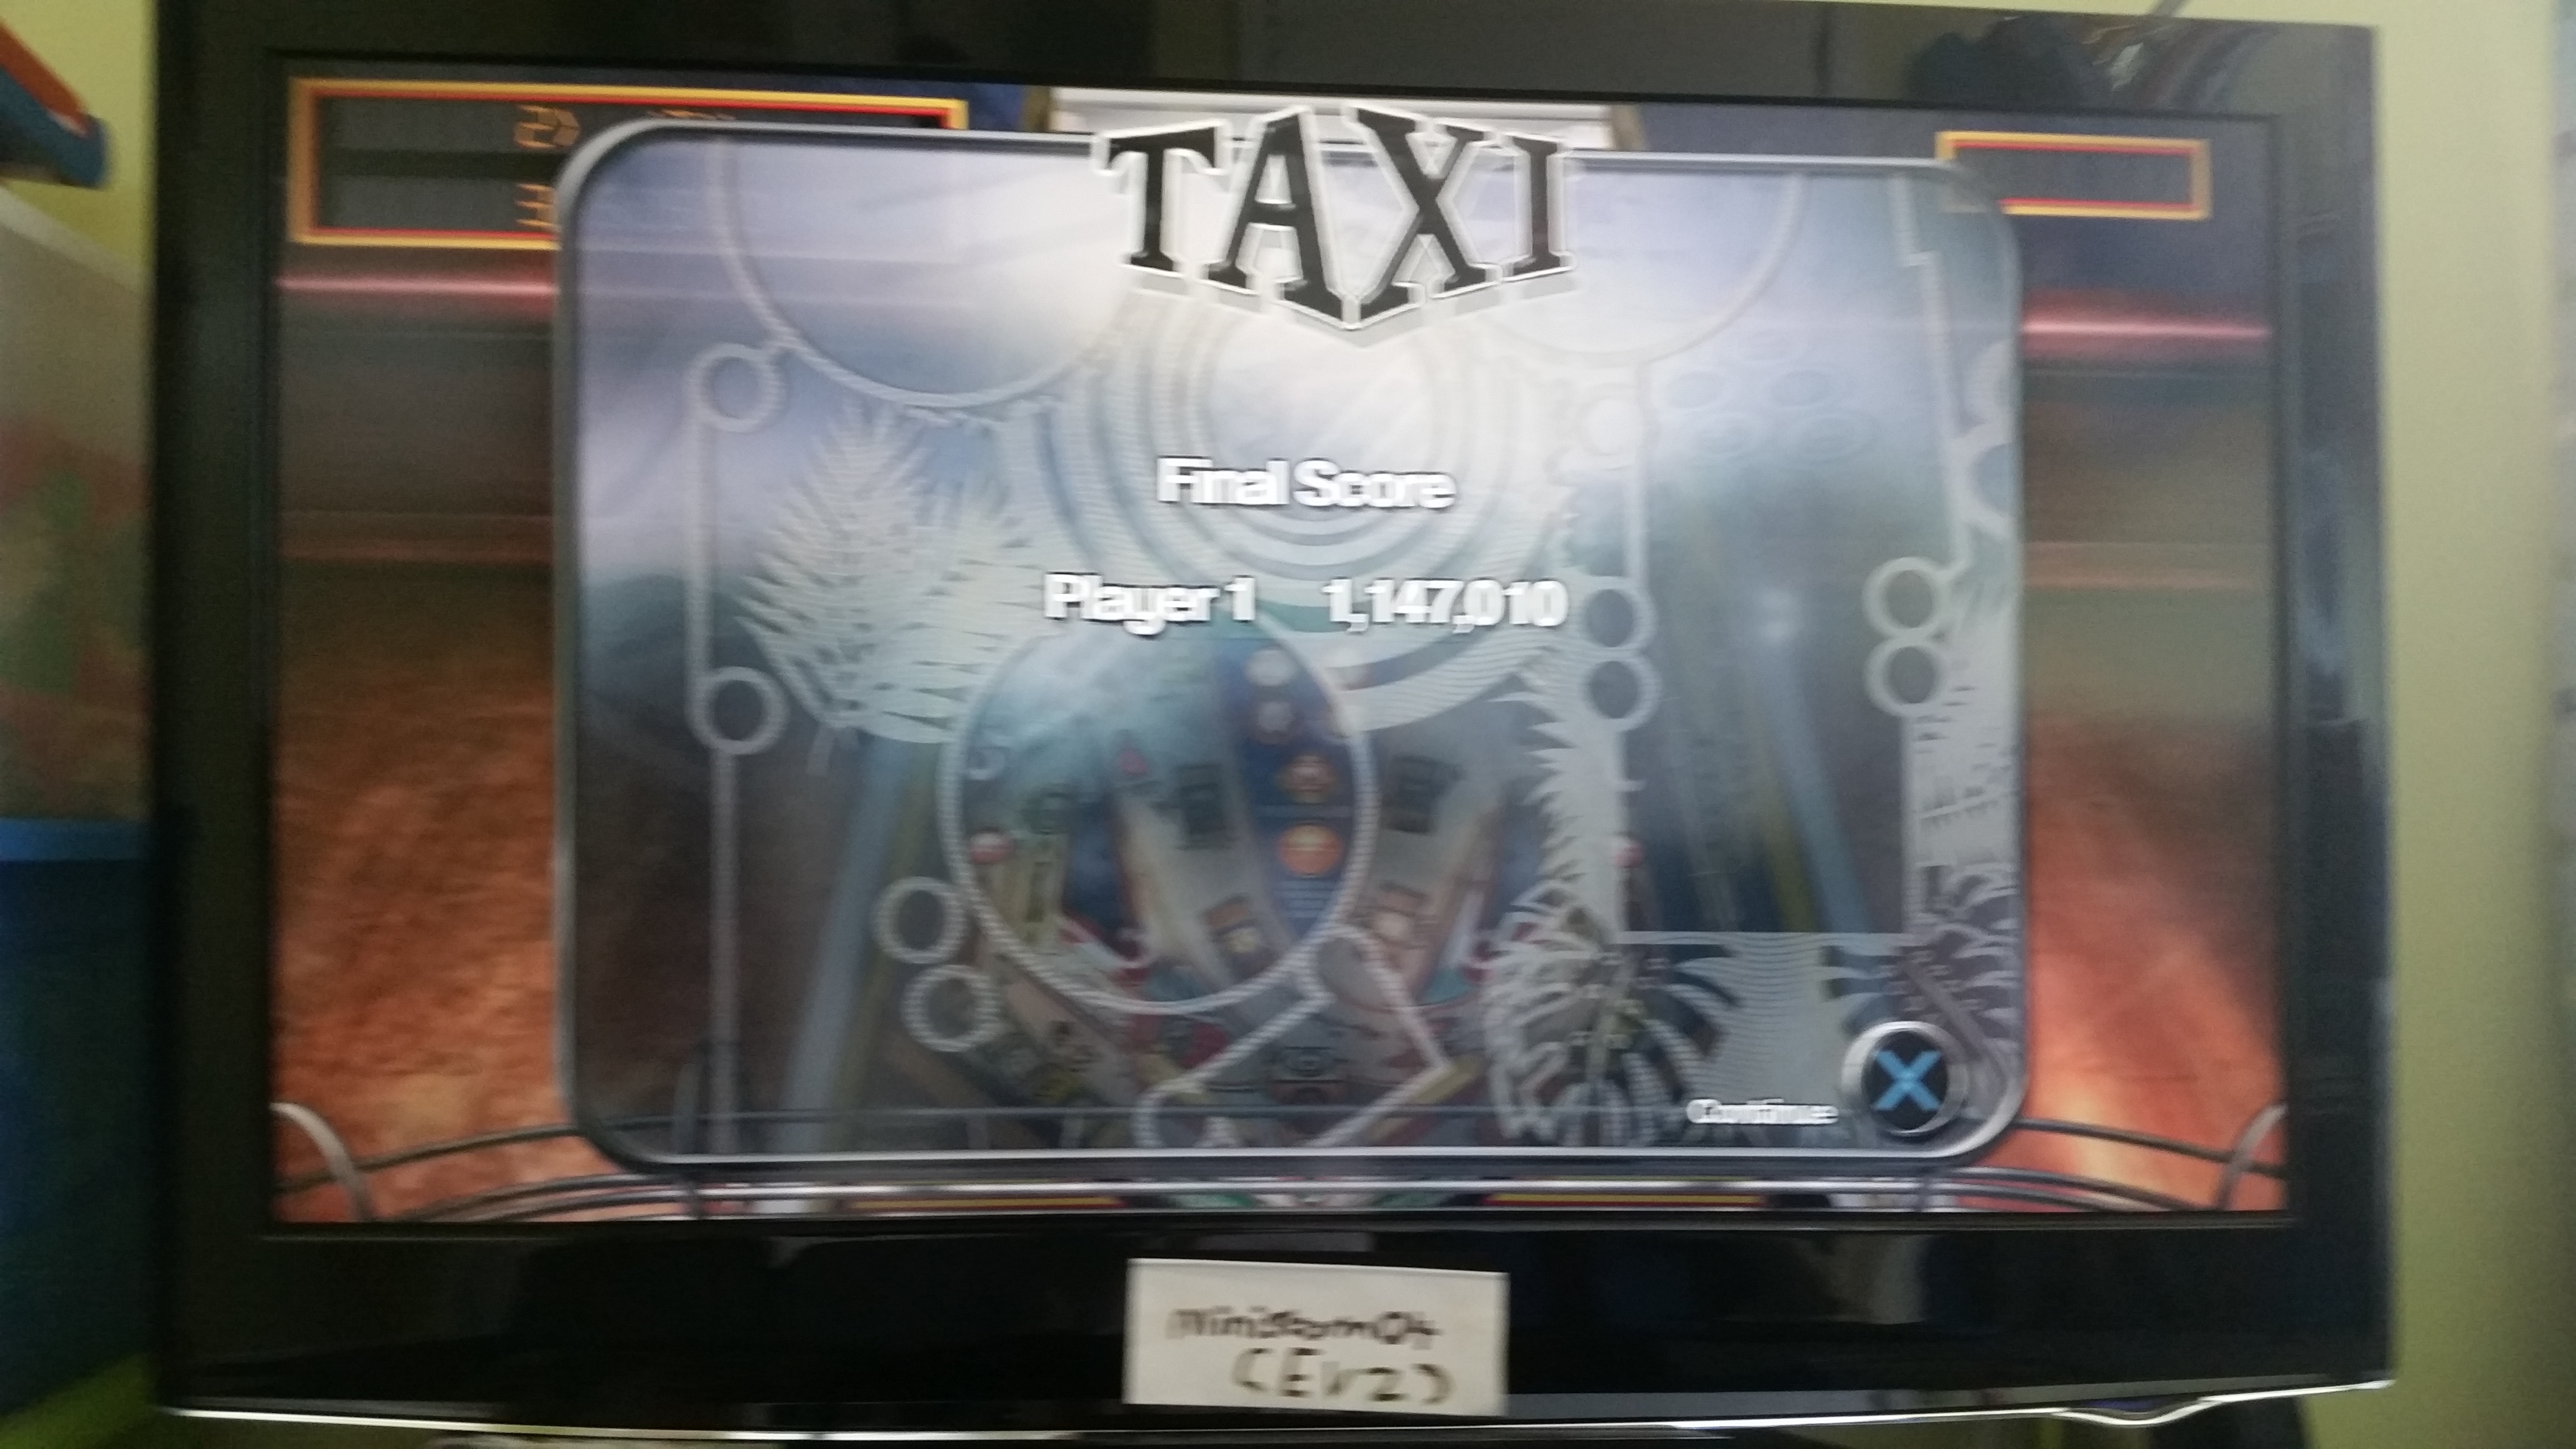 ministorm04: Pinball Arcade: Taxi (Playstation 4) 1,147,010 points on 2019-06-10 10:12:10